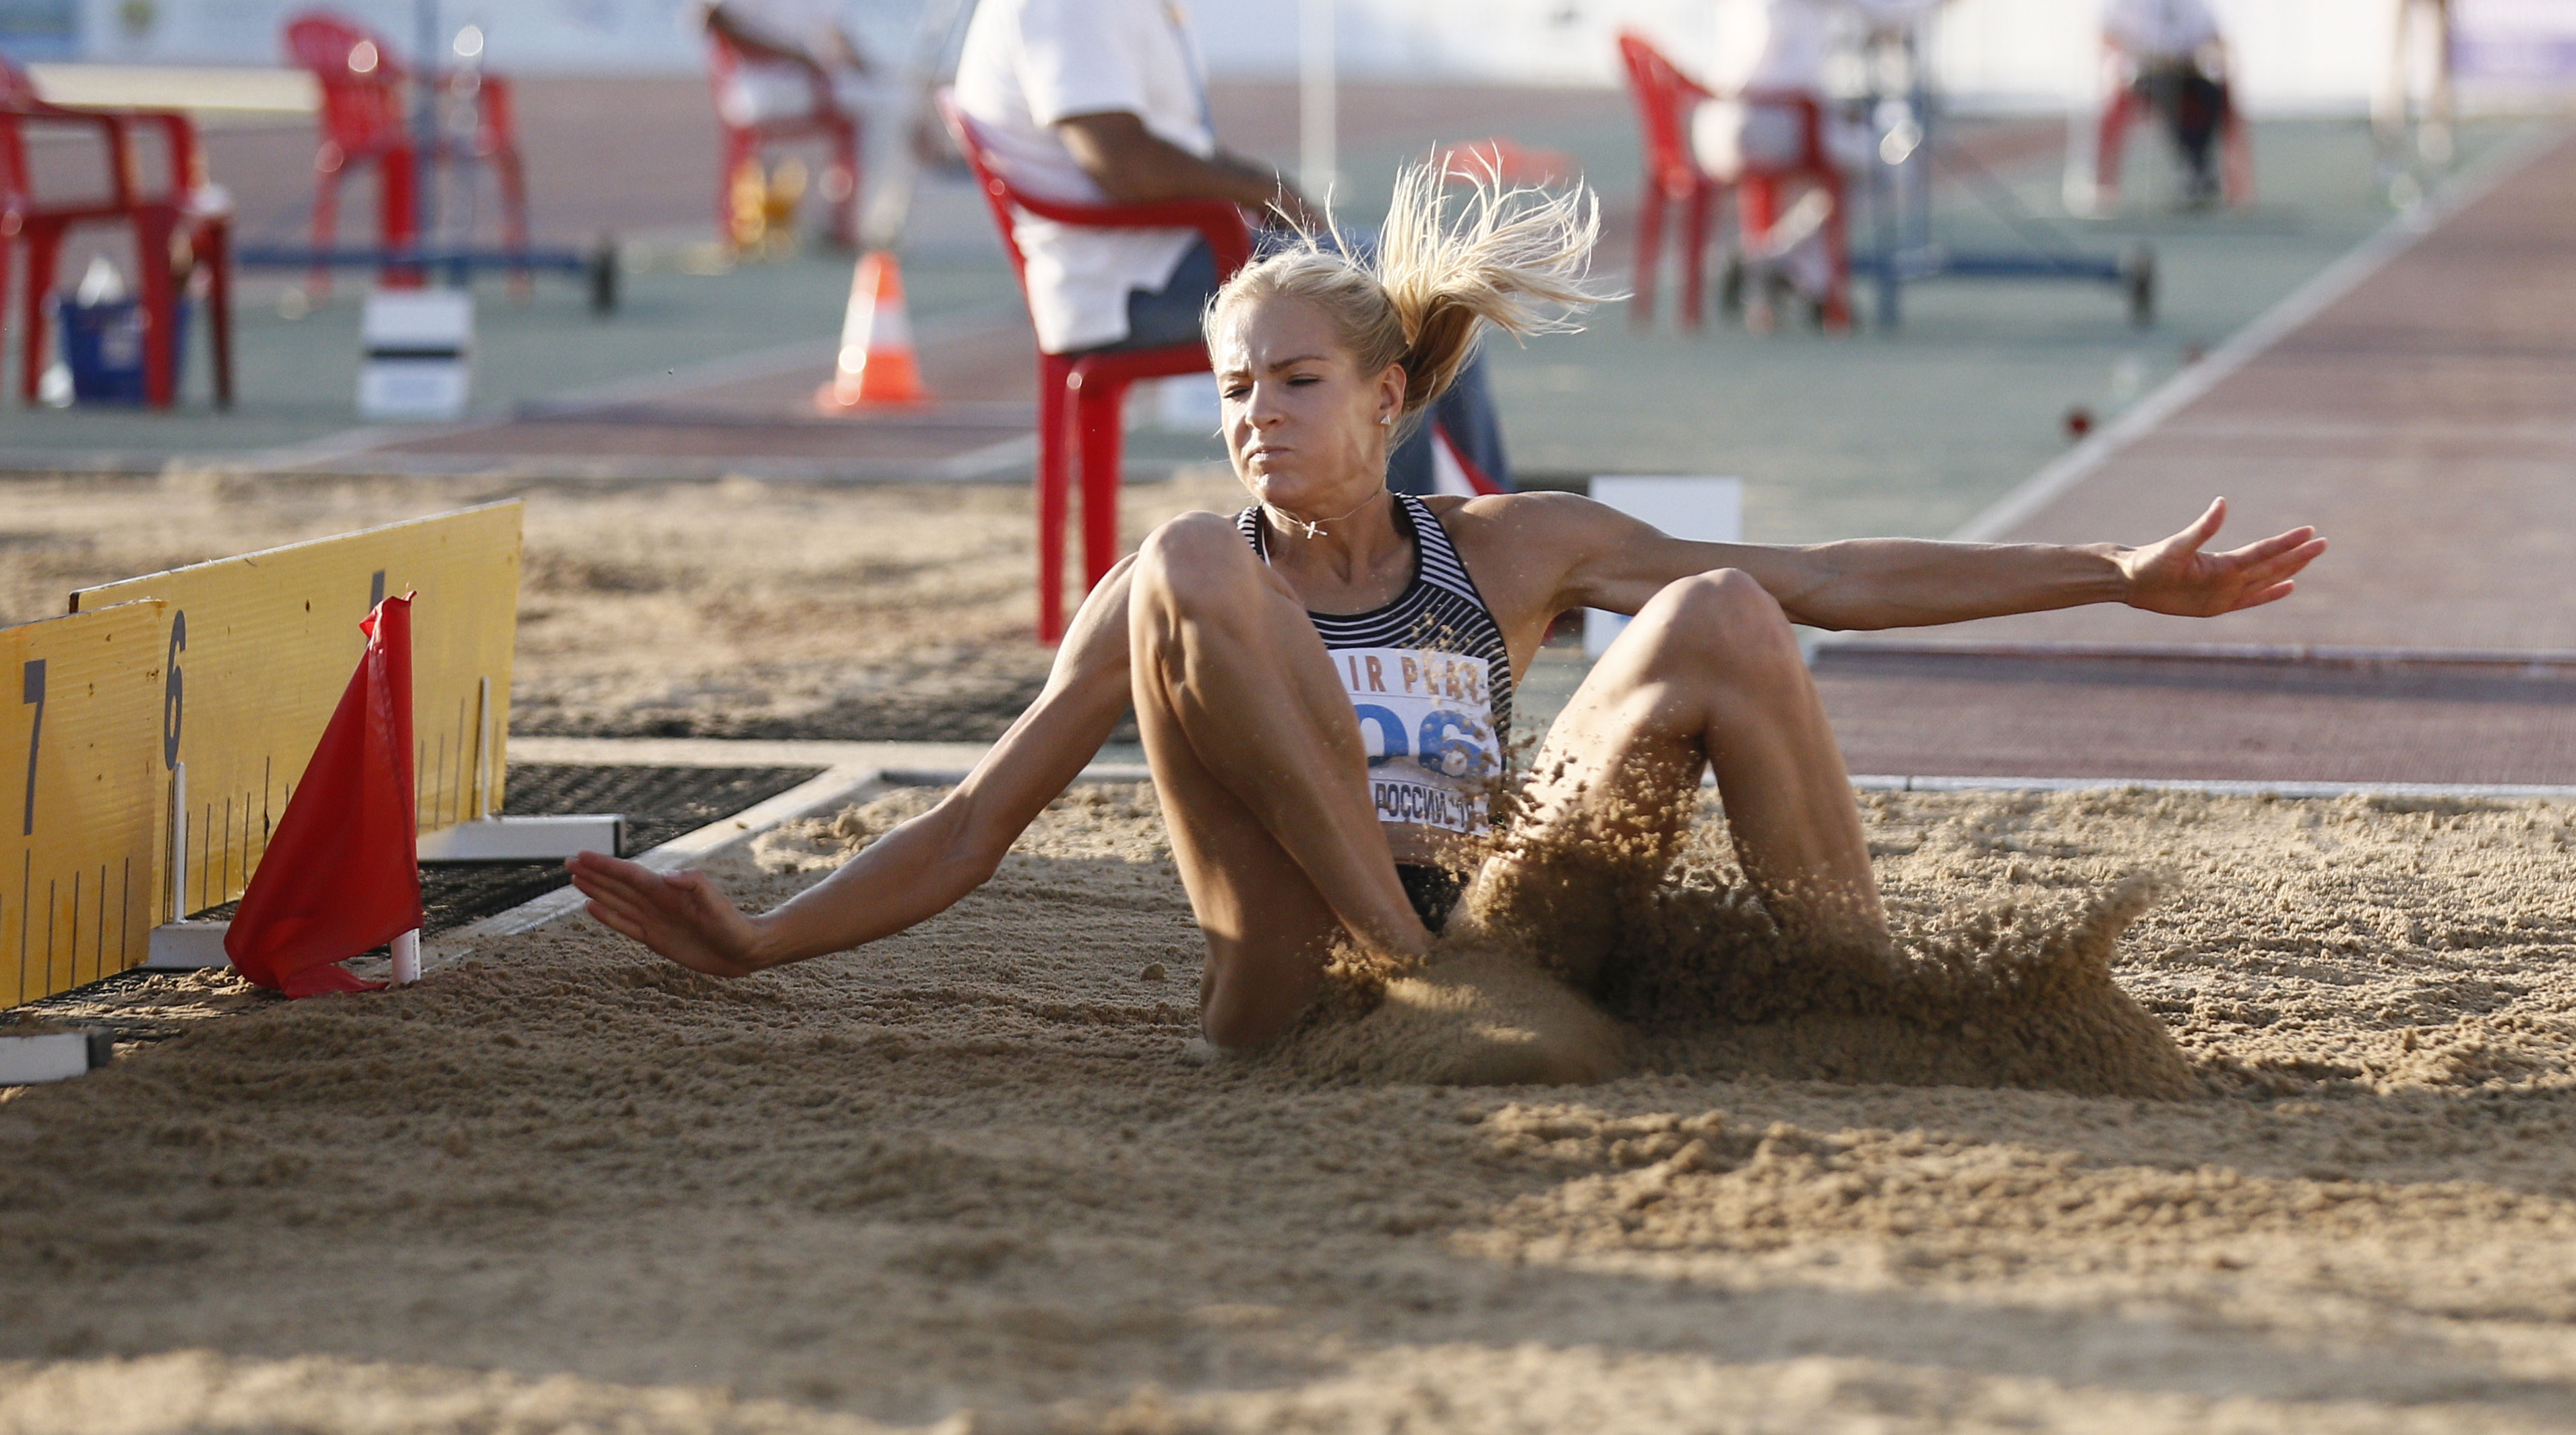 Russian jumper Daria Klishina was suspended from participation in the Olympiad 13.08.2016